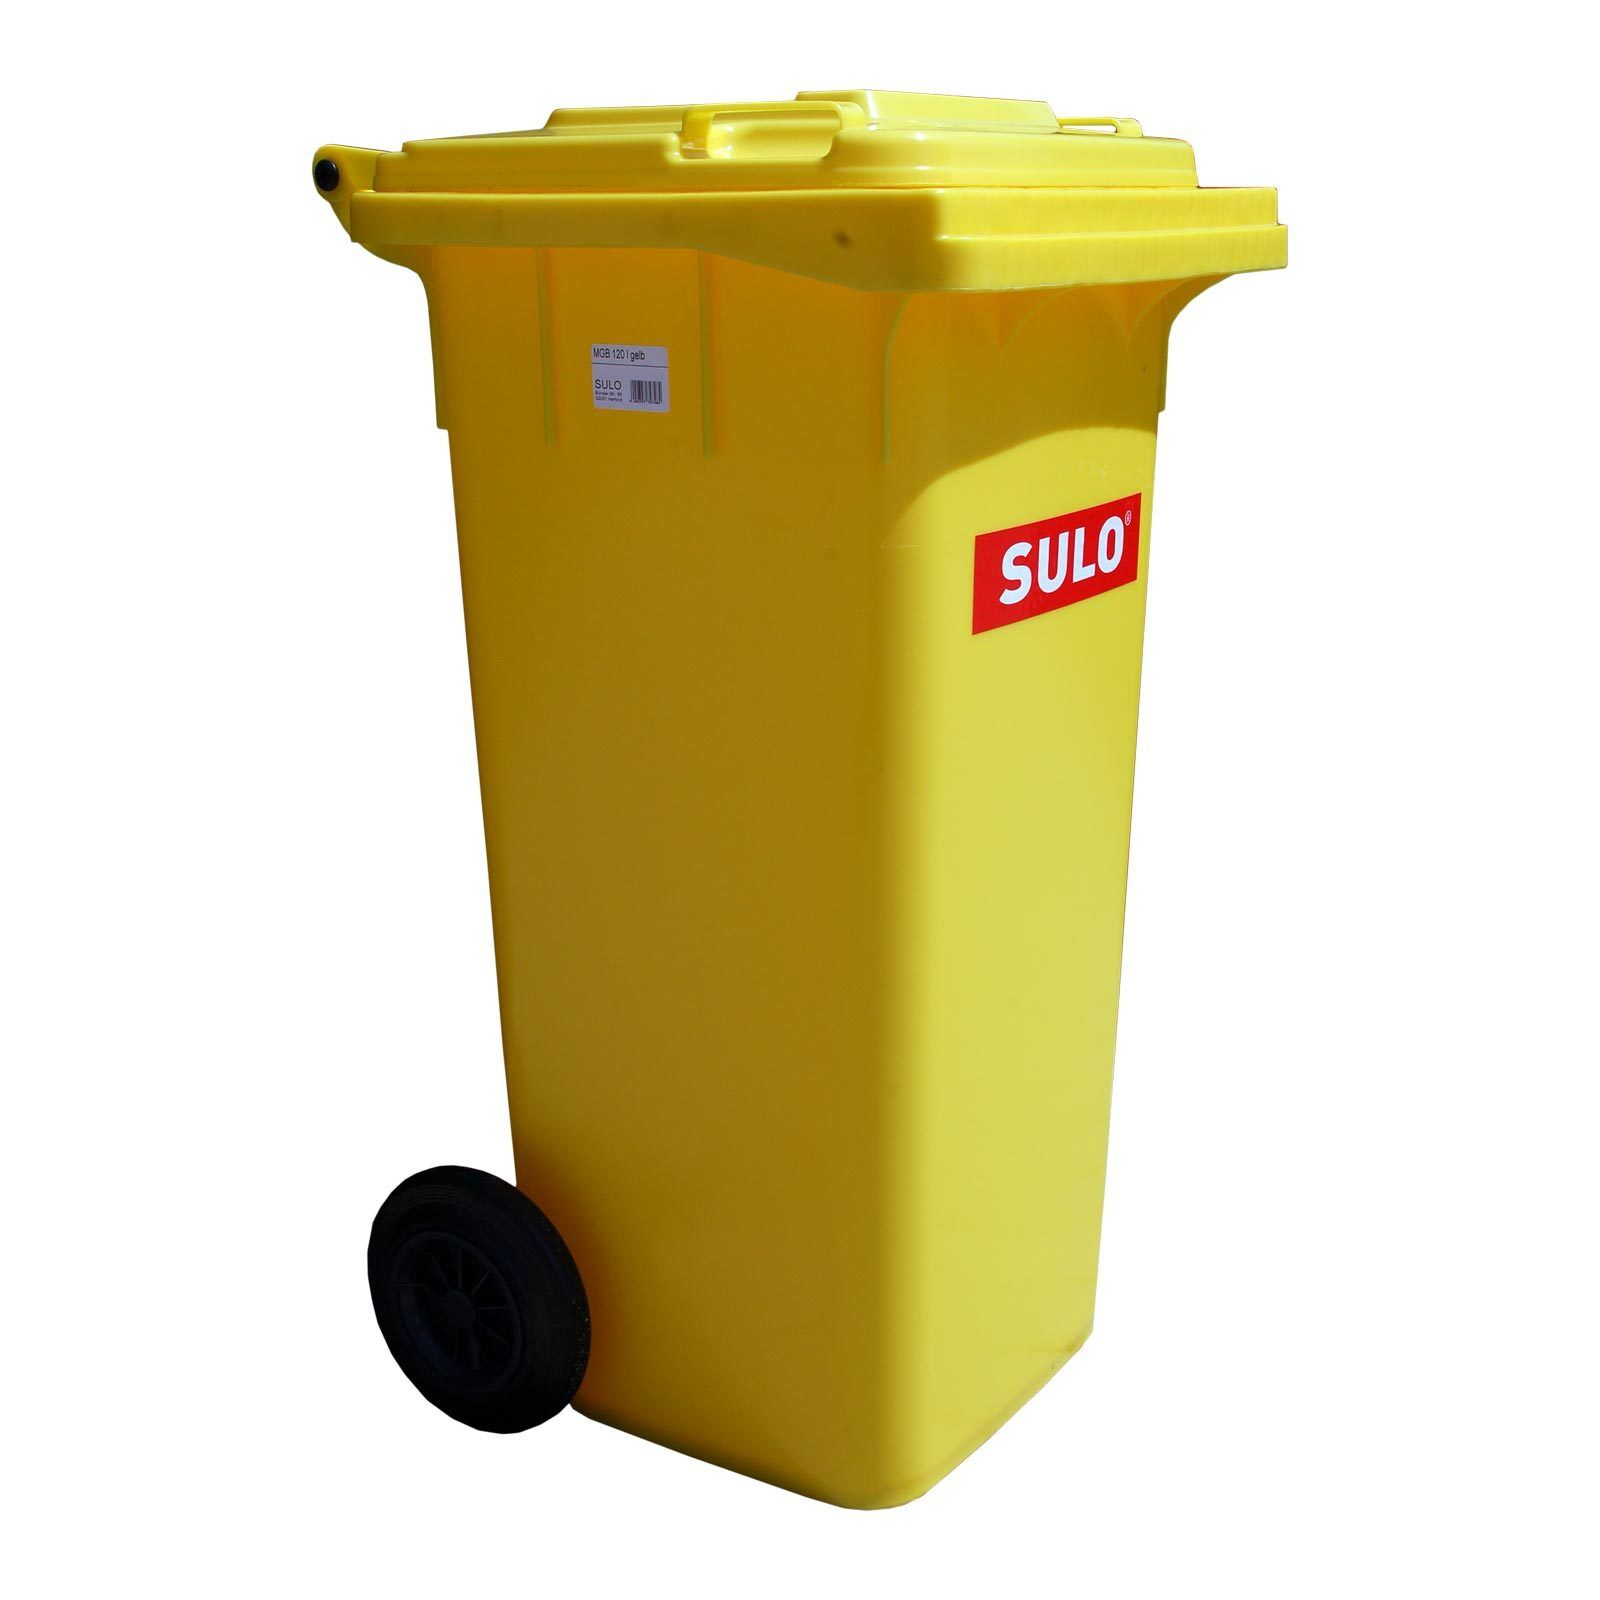 120 L dustbin SULO Gelb bin recycling household roll waste container (22071)